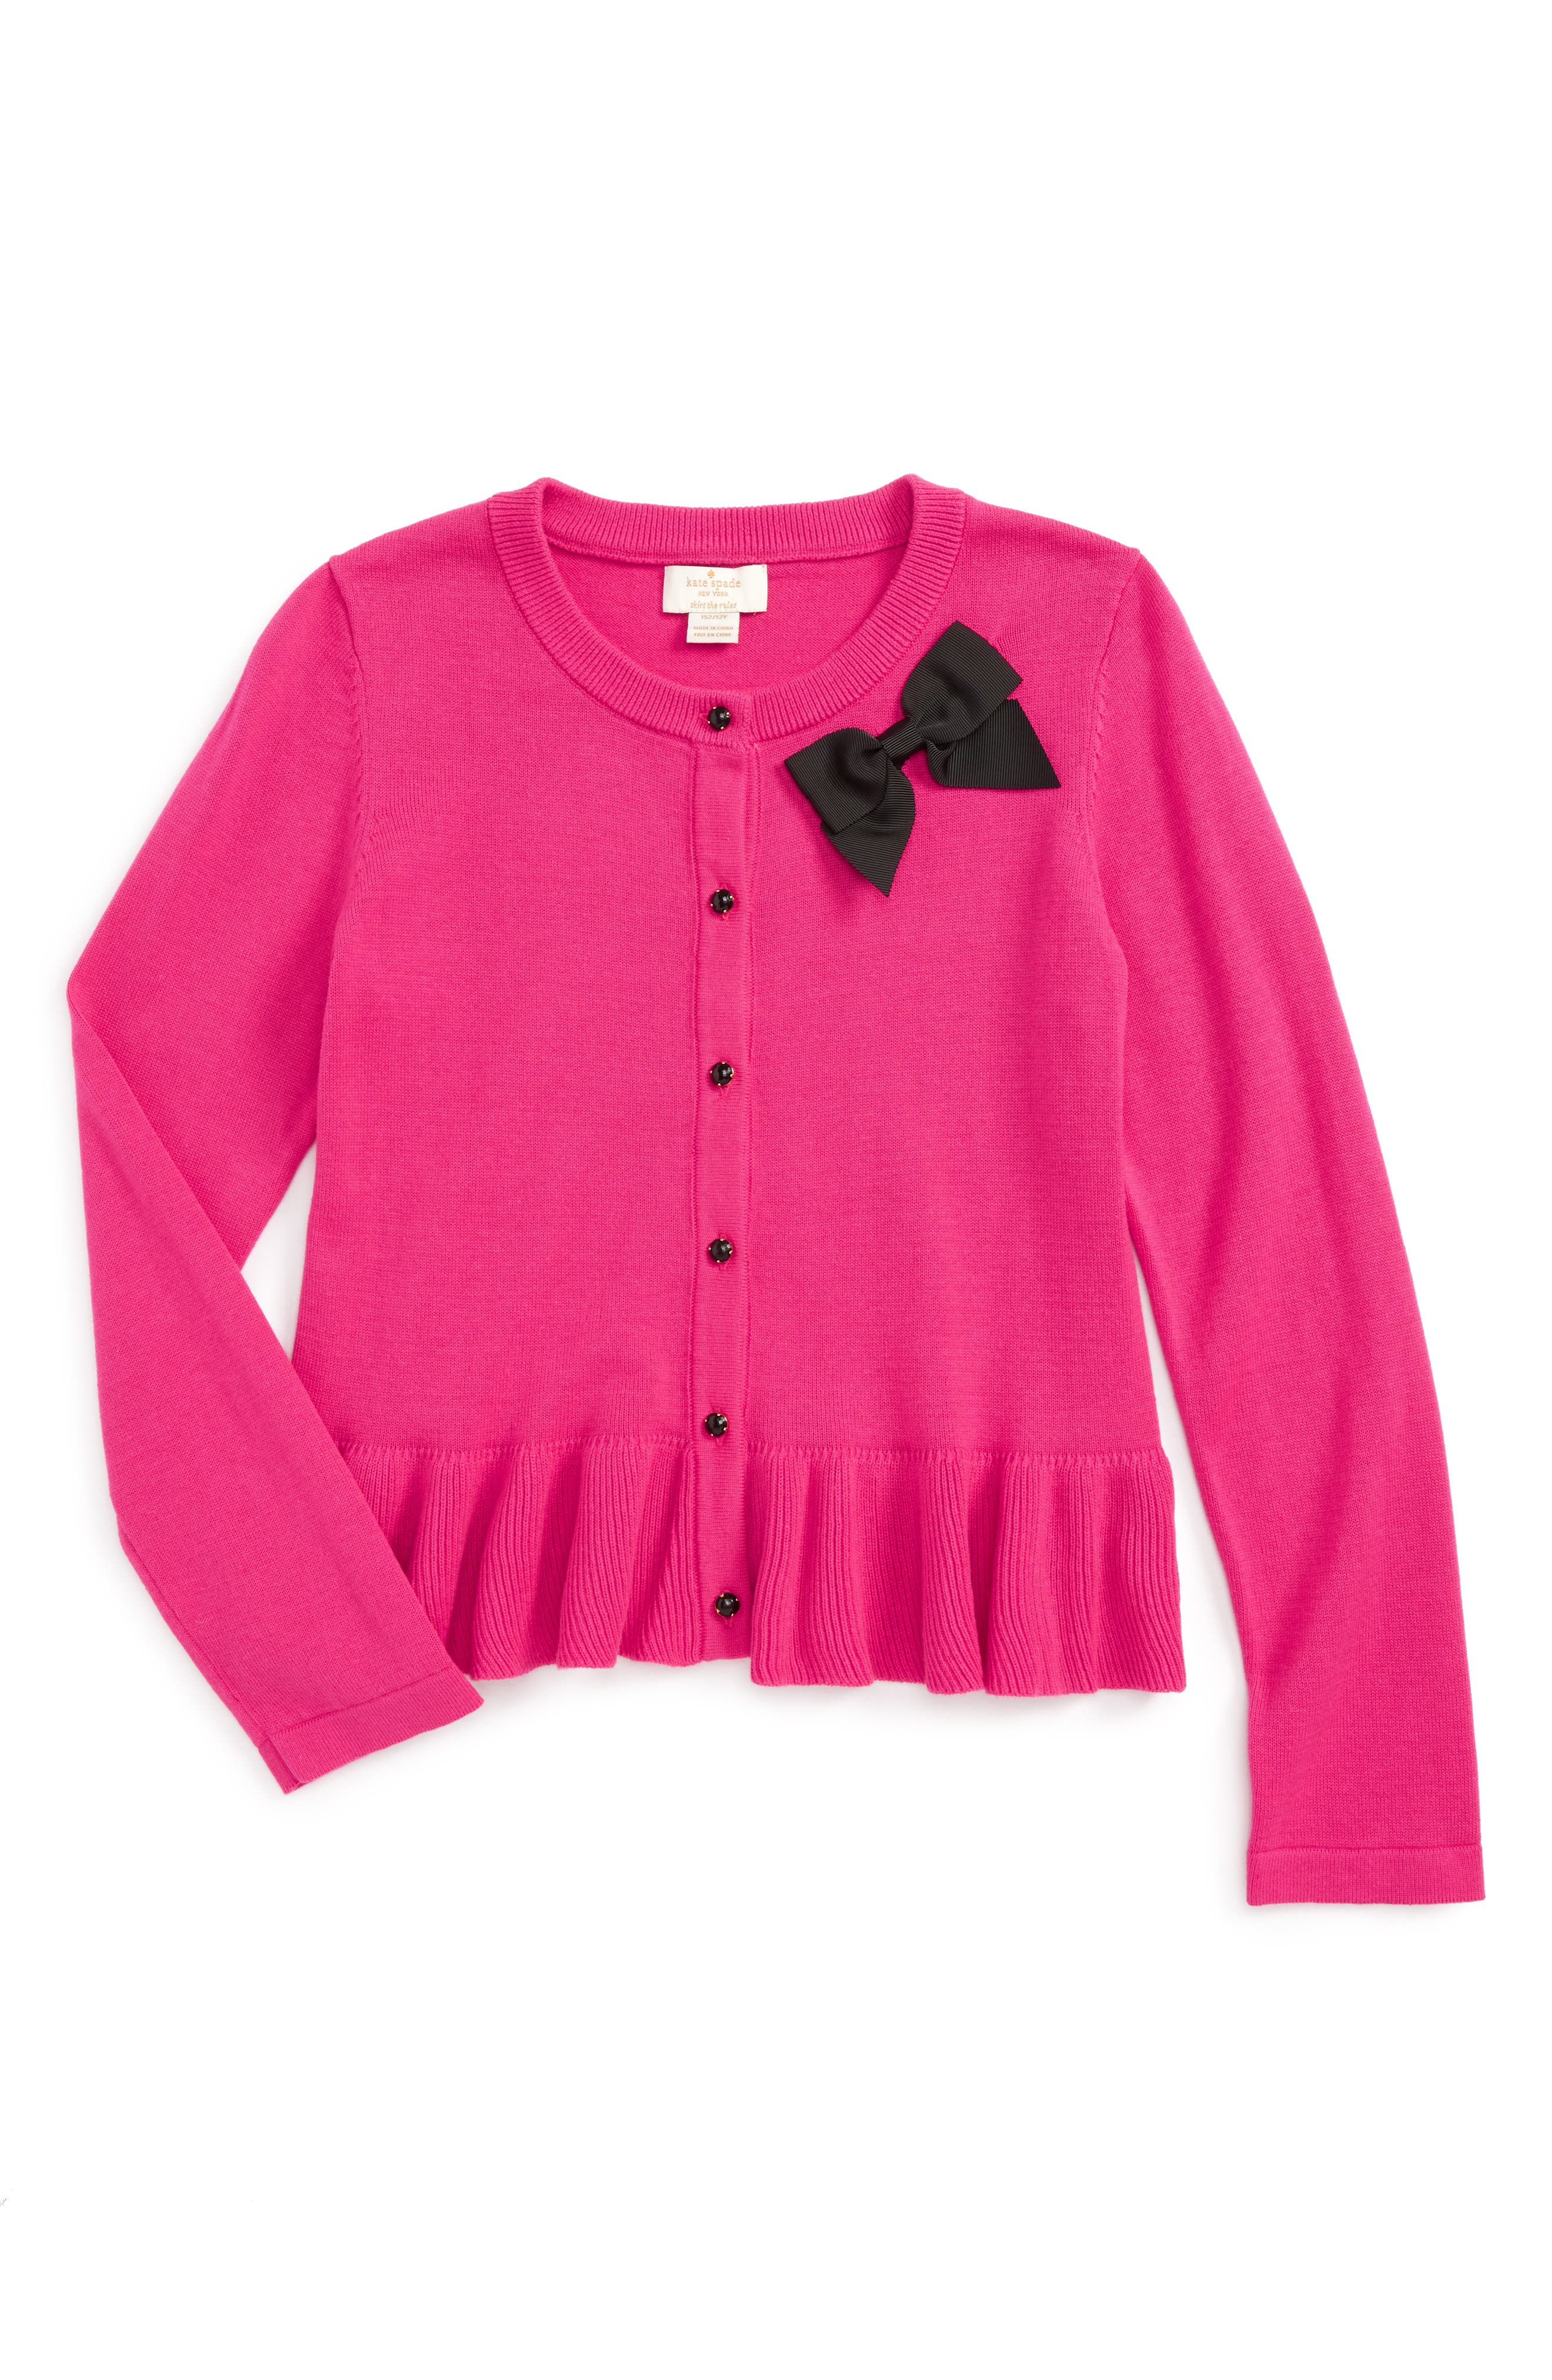 kate spade new york peplum cardigan (Big Girls)